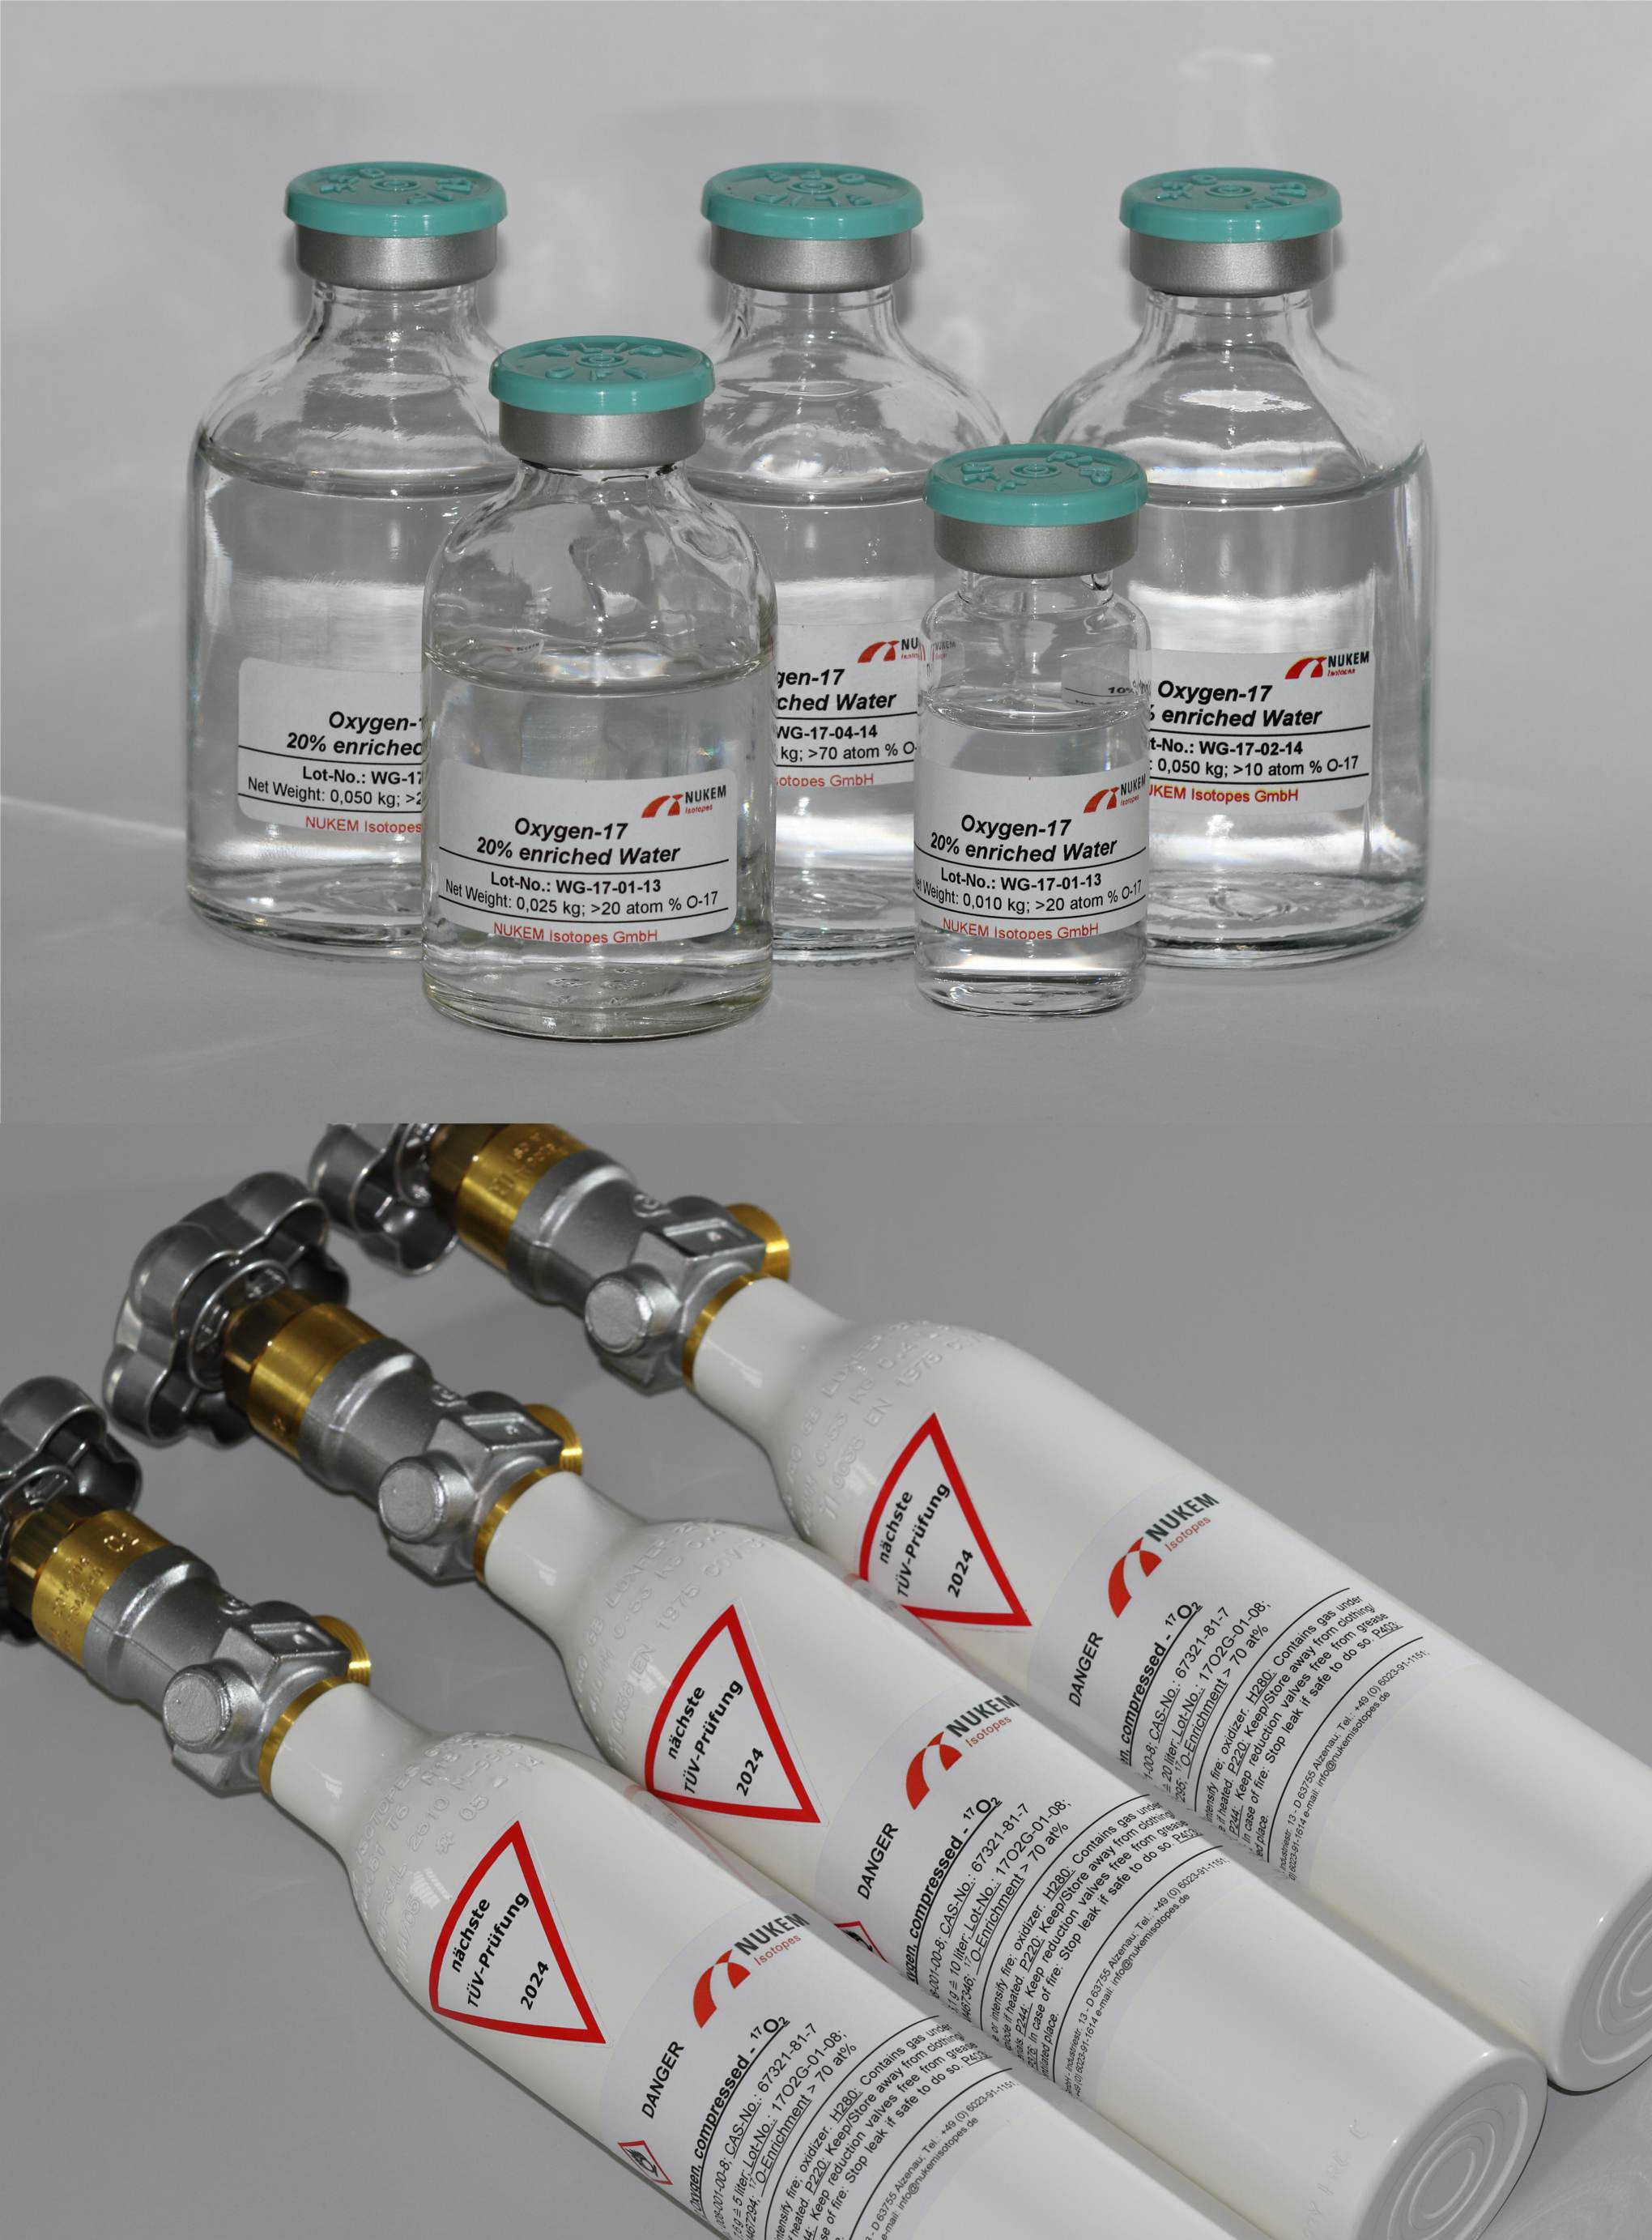 Oxygen-17 Product